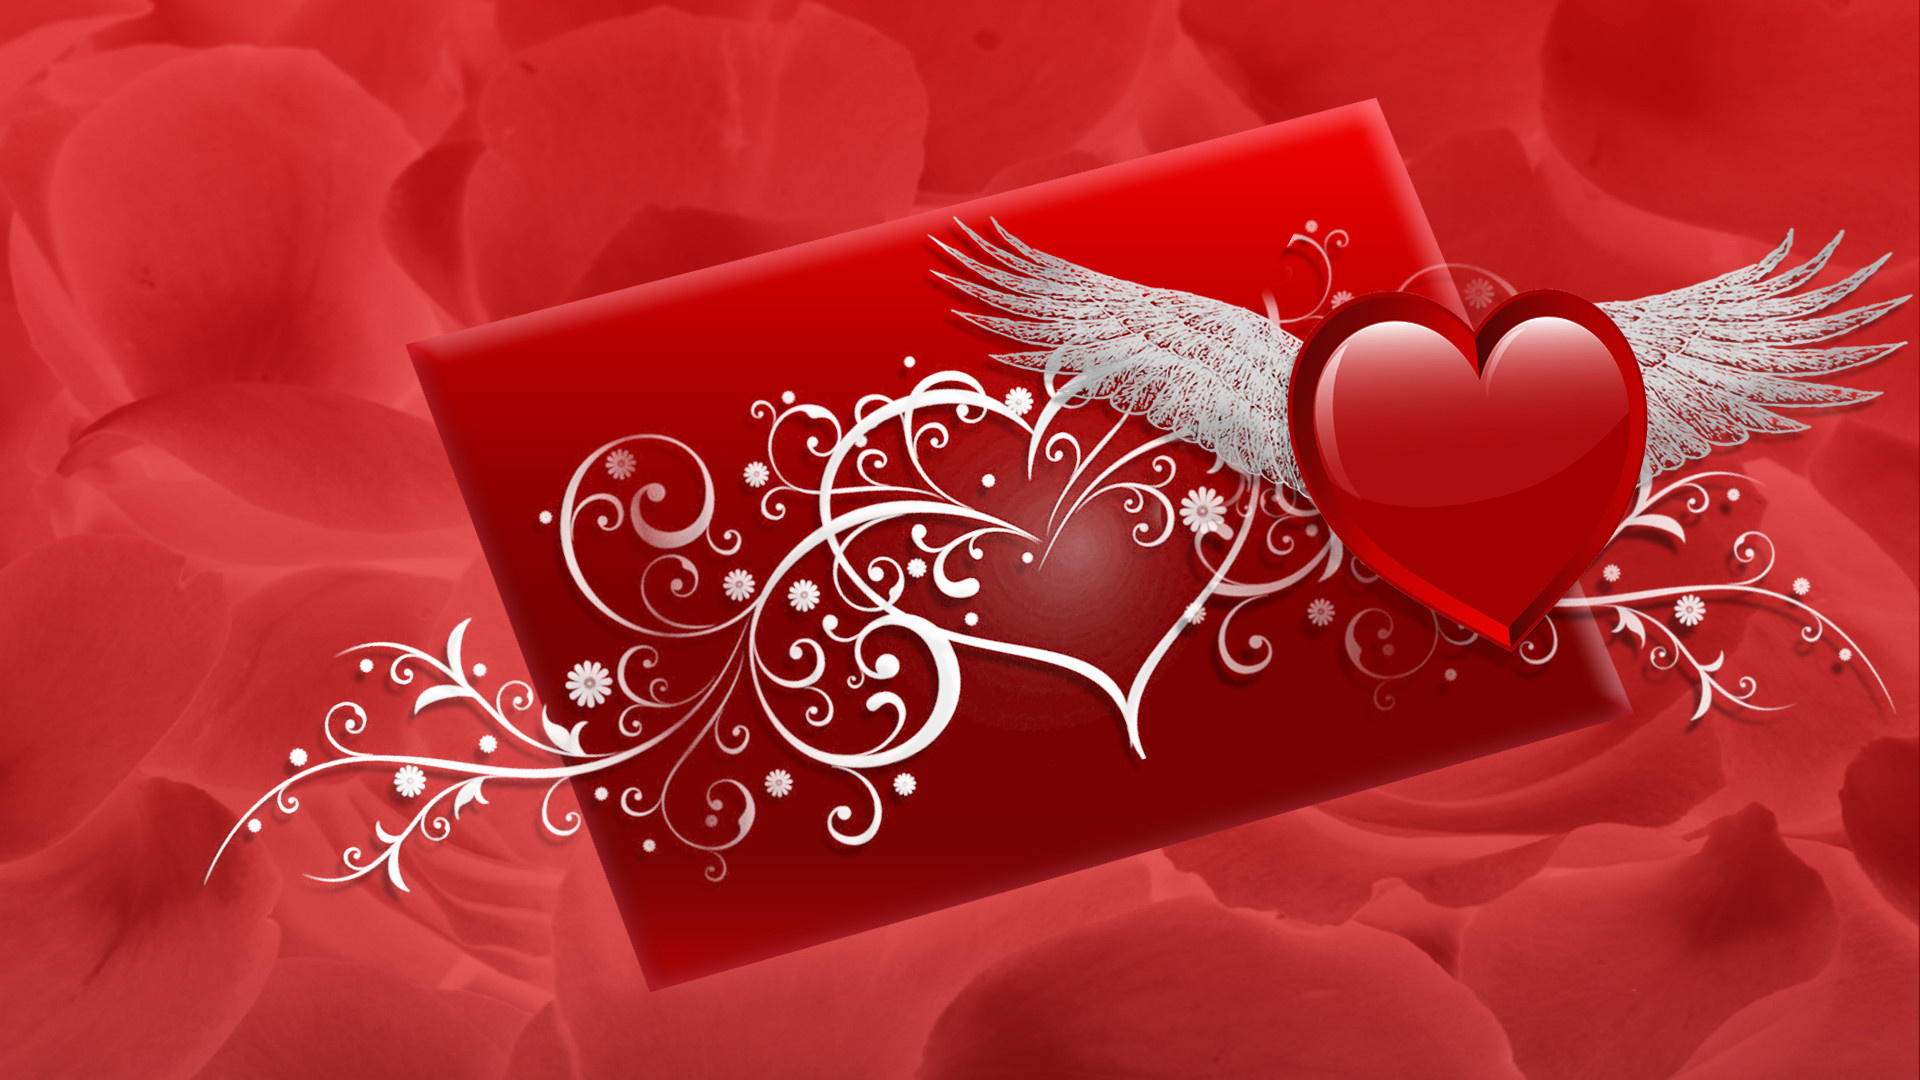 Valentine Screensaver wallpaper – 342896